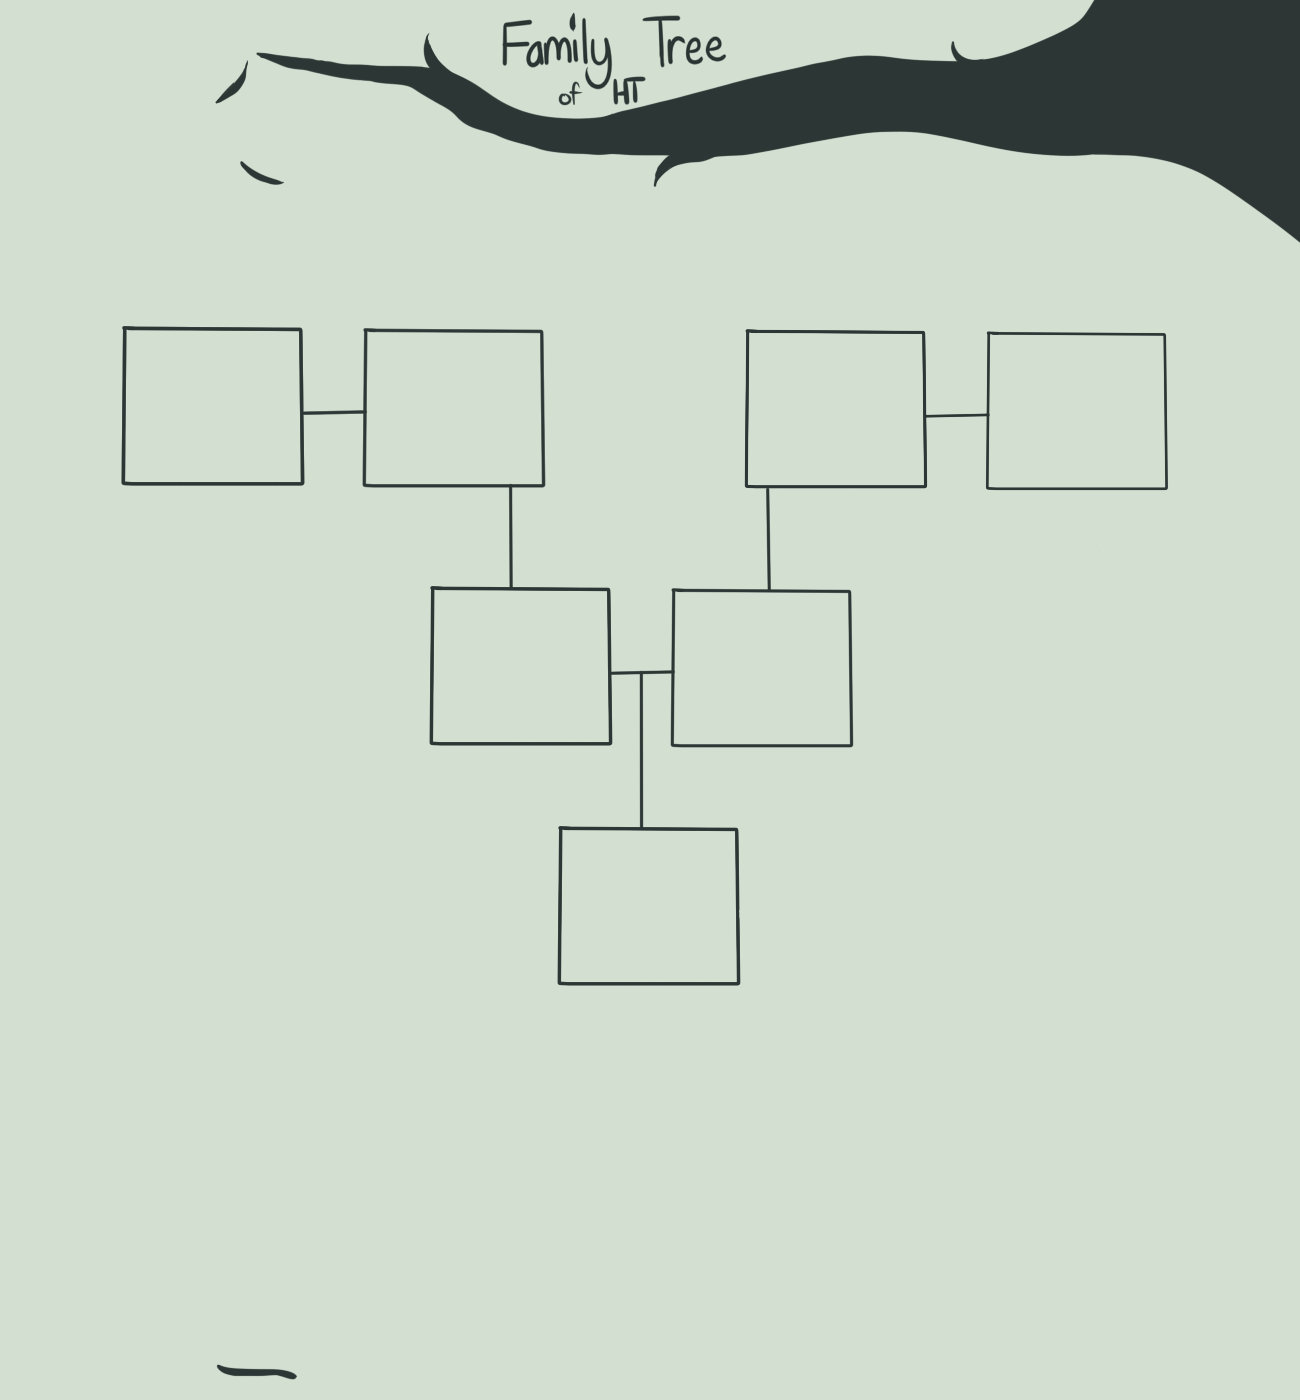 HT - Family Tree Template by PettyBluez on DeviantArt